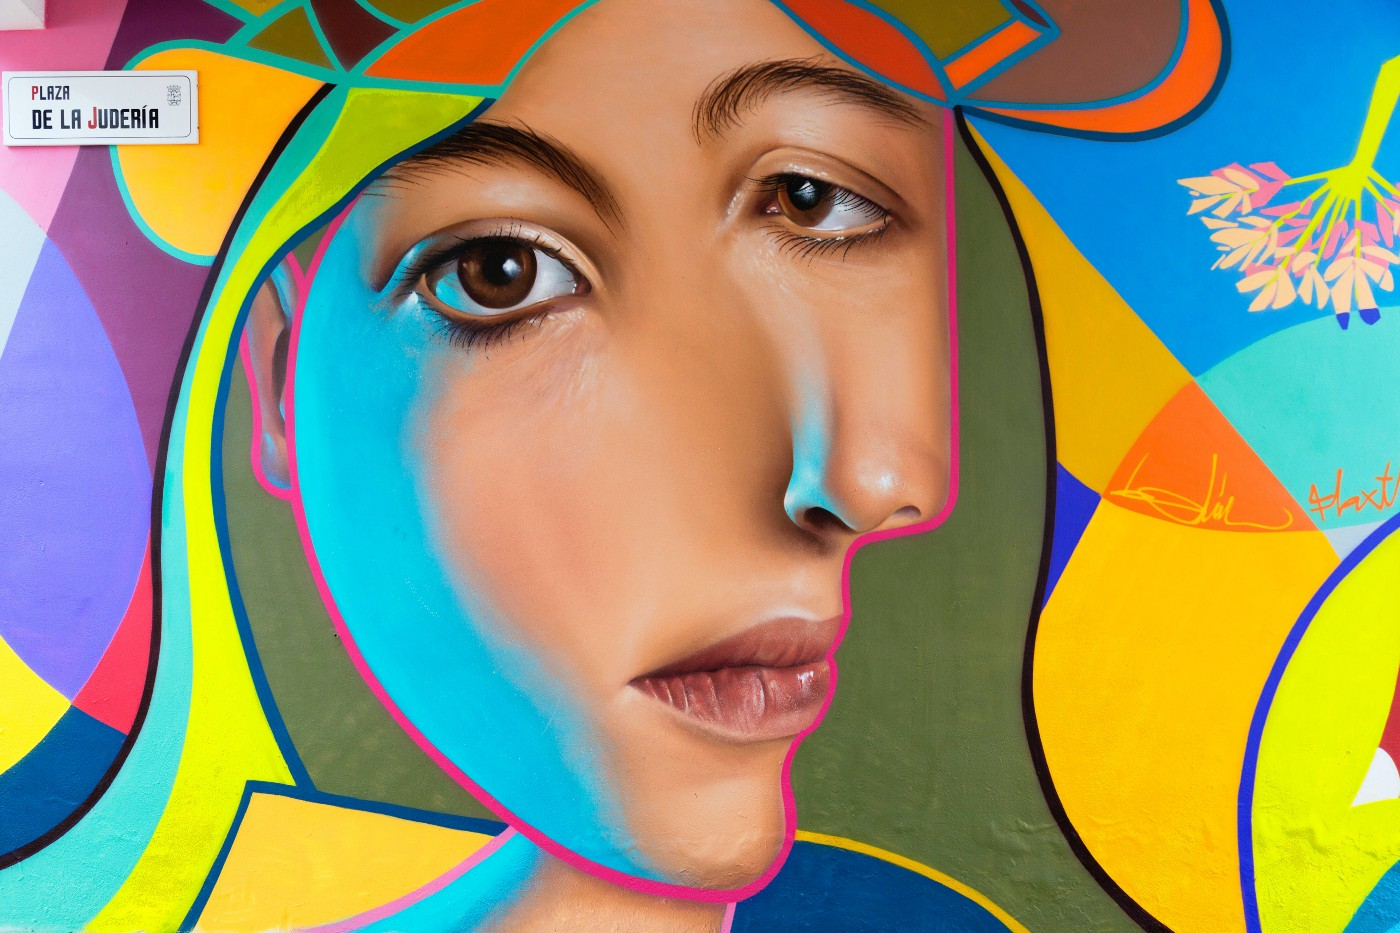 A picture of face abstract painting on a wall